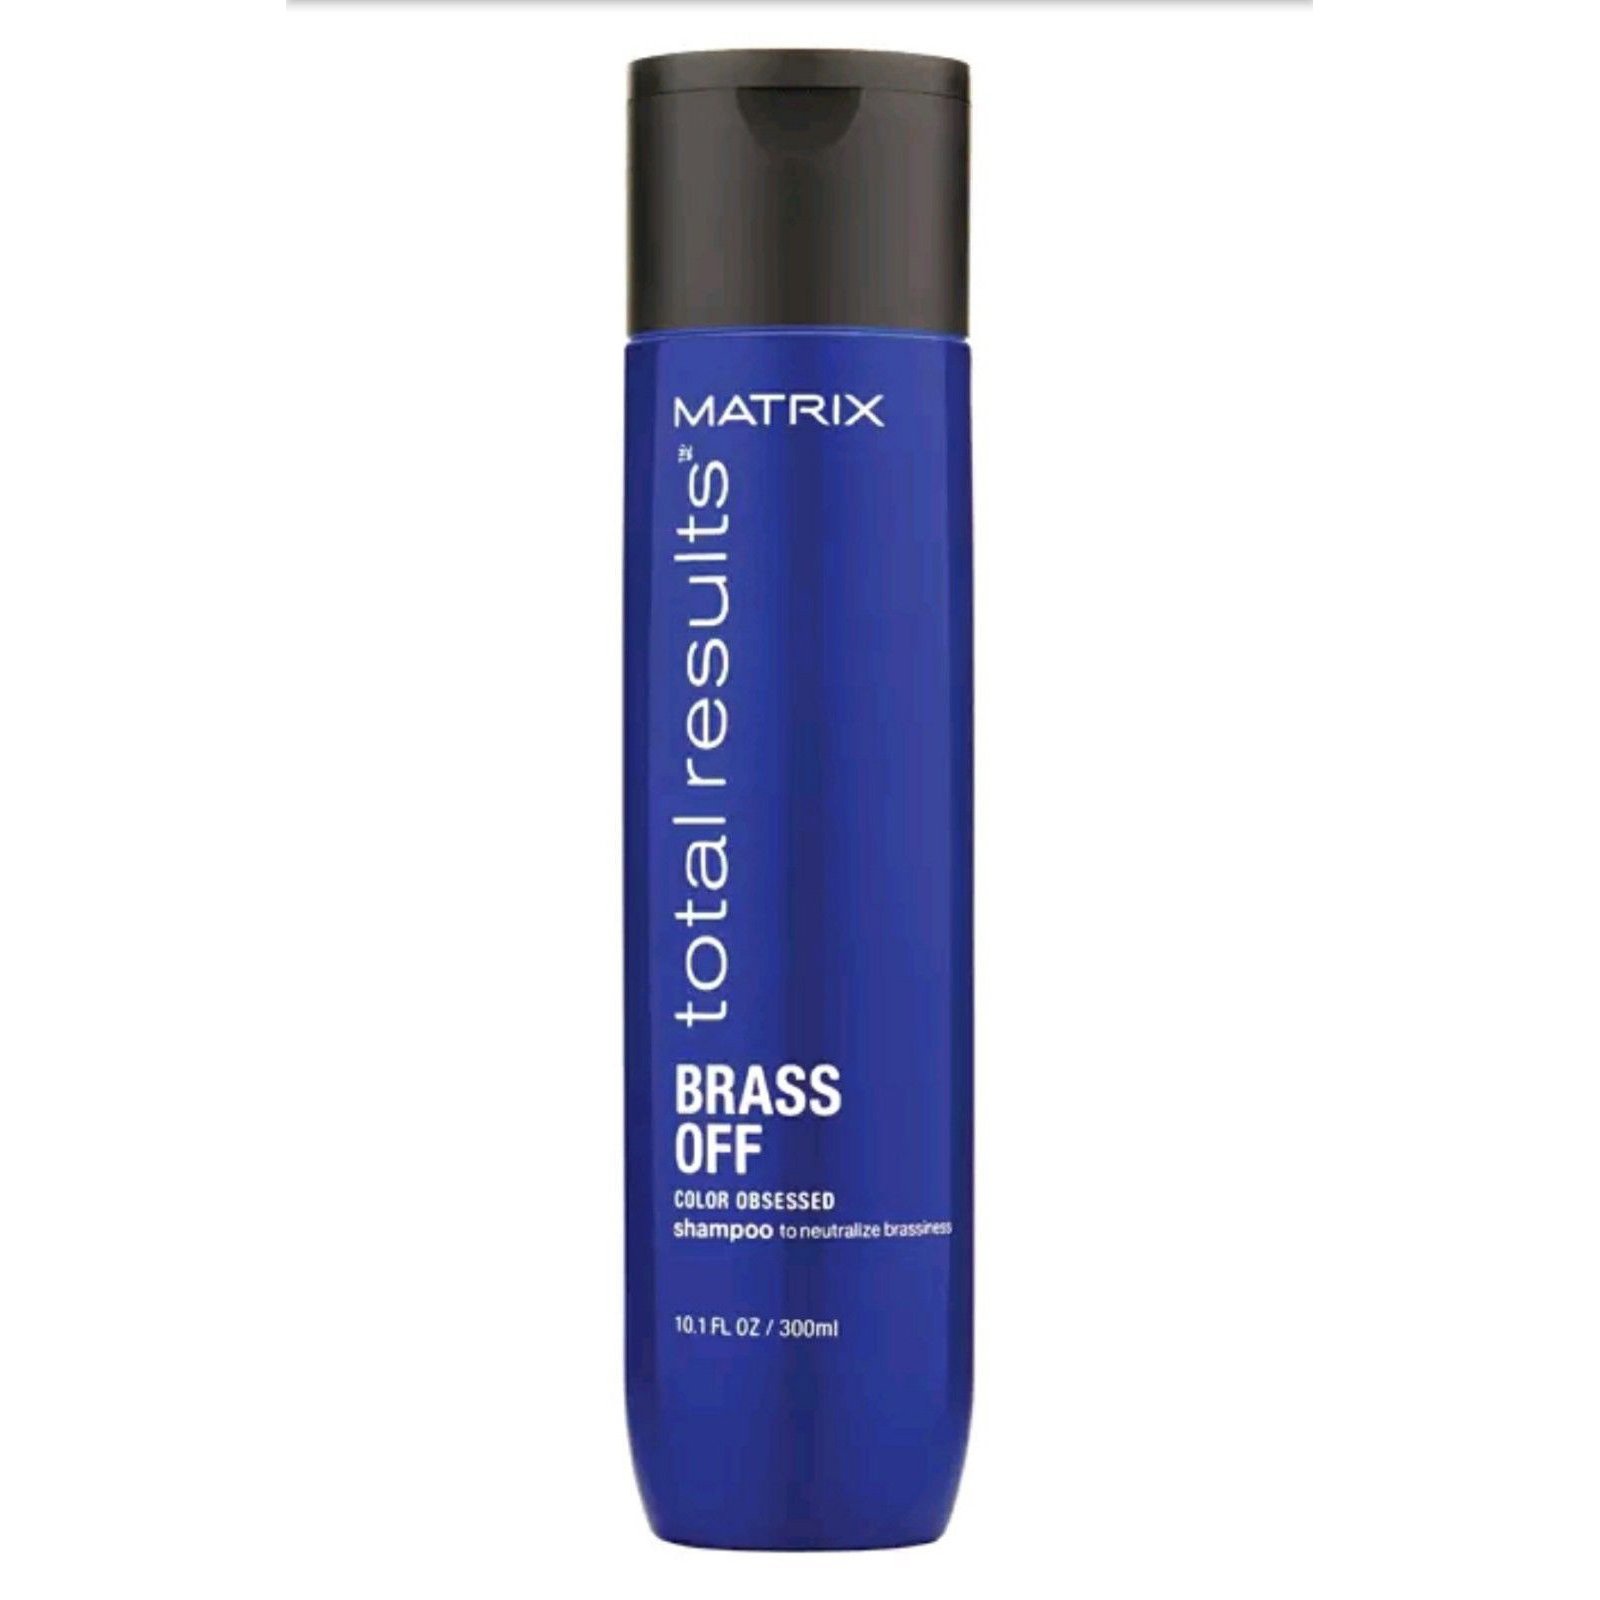 Matrix Total Results Brass Off Shampoo - Best Blue Shampoos for Brunette Hair